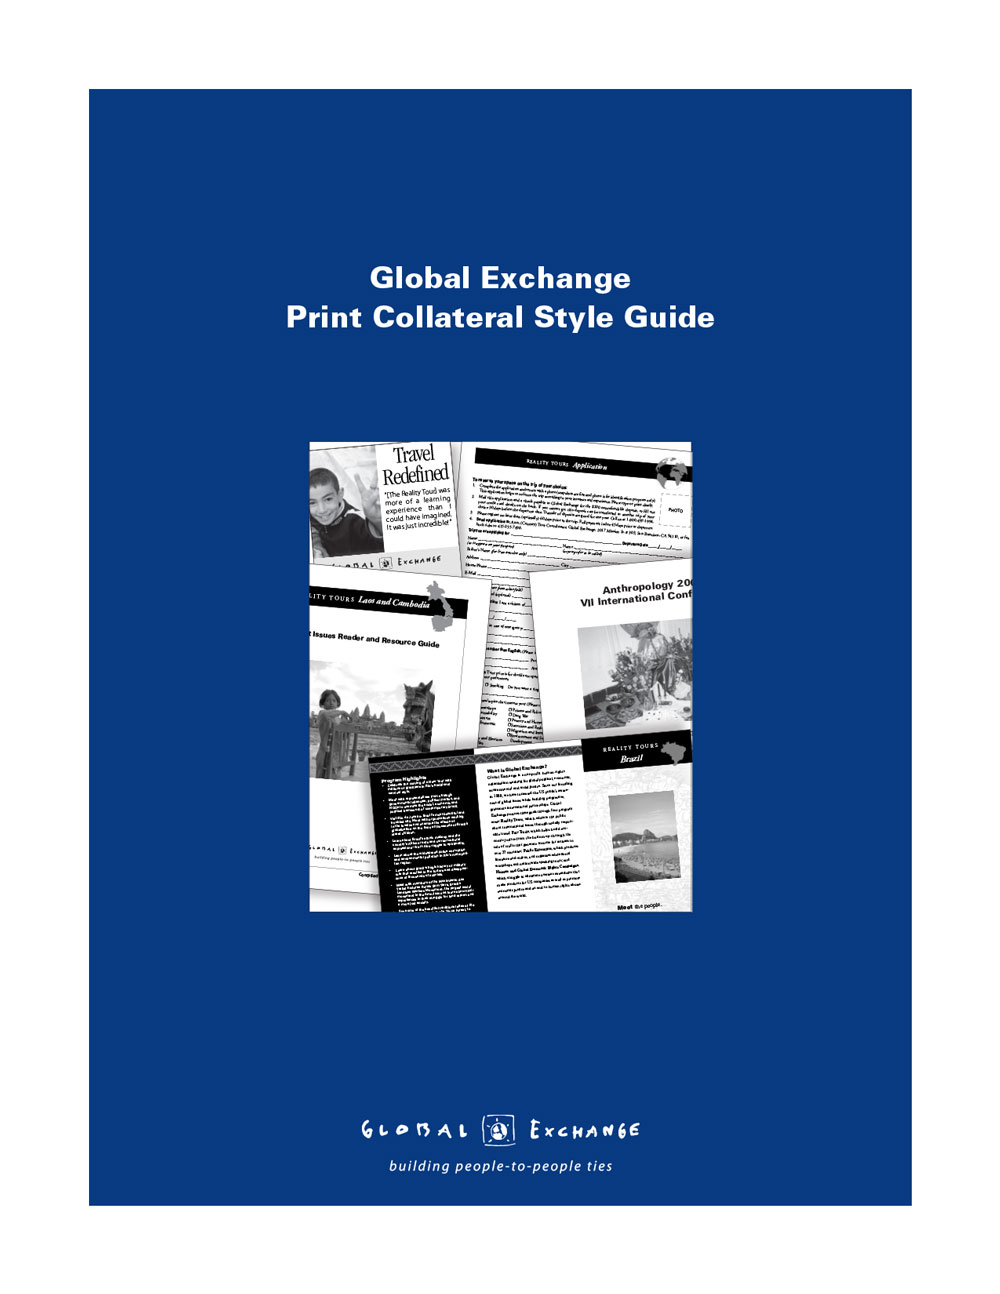 Global Exchange Style Guide cover